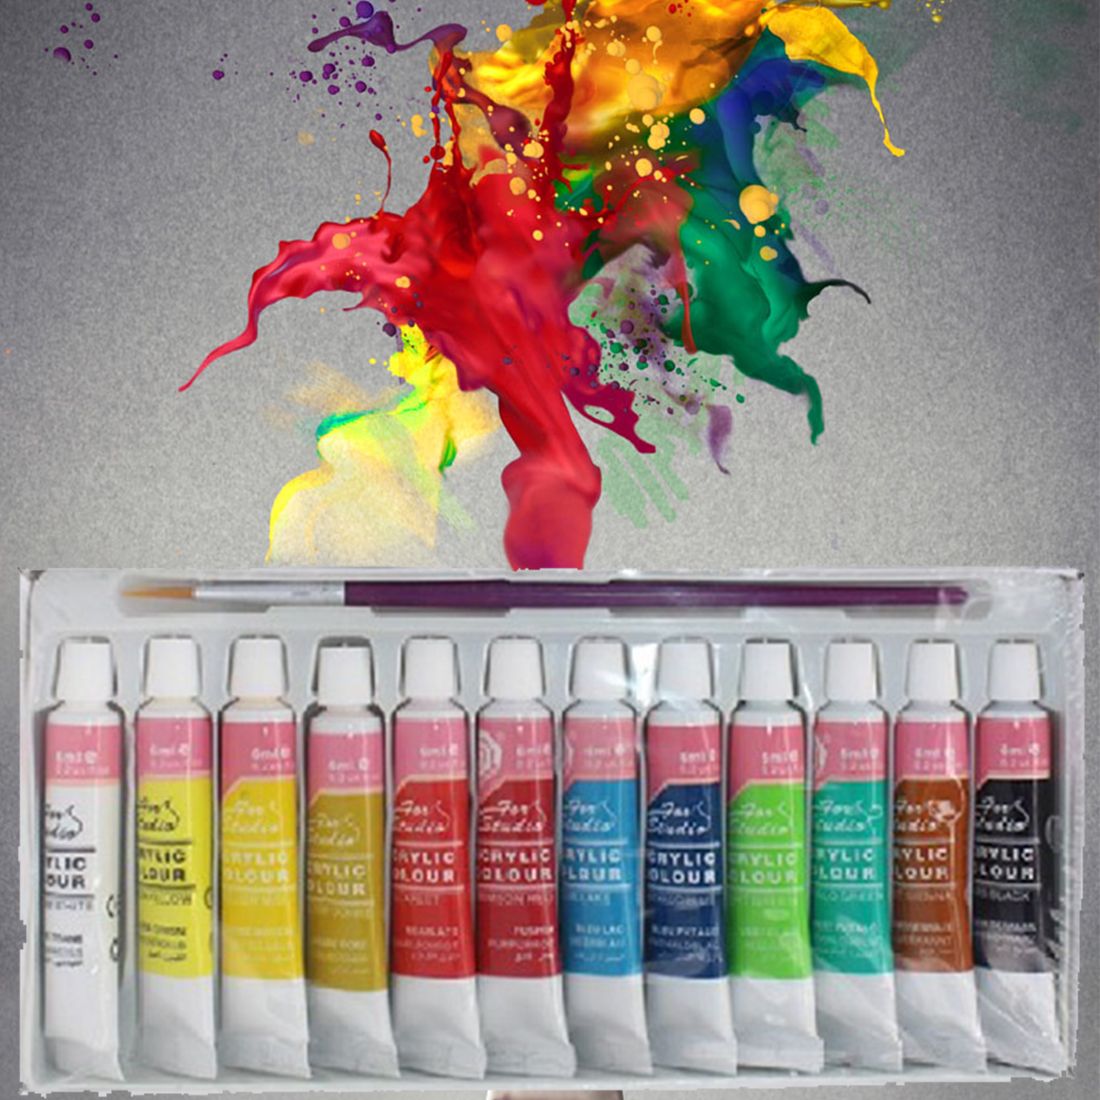 FangNymph Akrilik Boya 12 Colors Acrylic Paints Set Hand Painted Wall Painting Textile Paint Brightly Colored Art Supplies